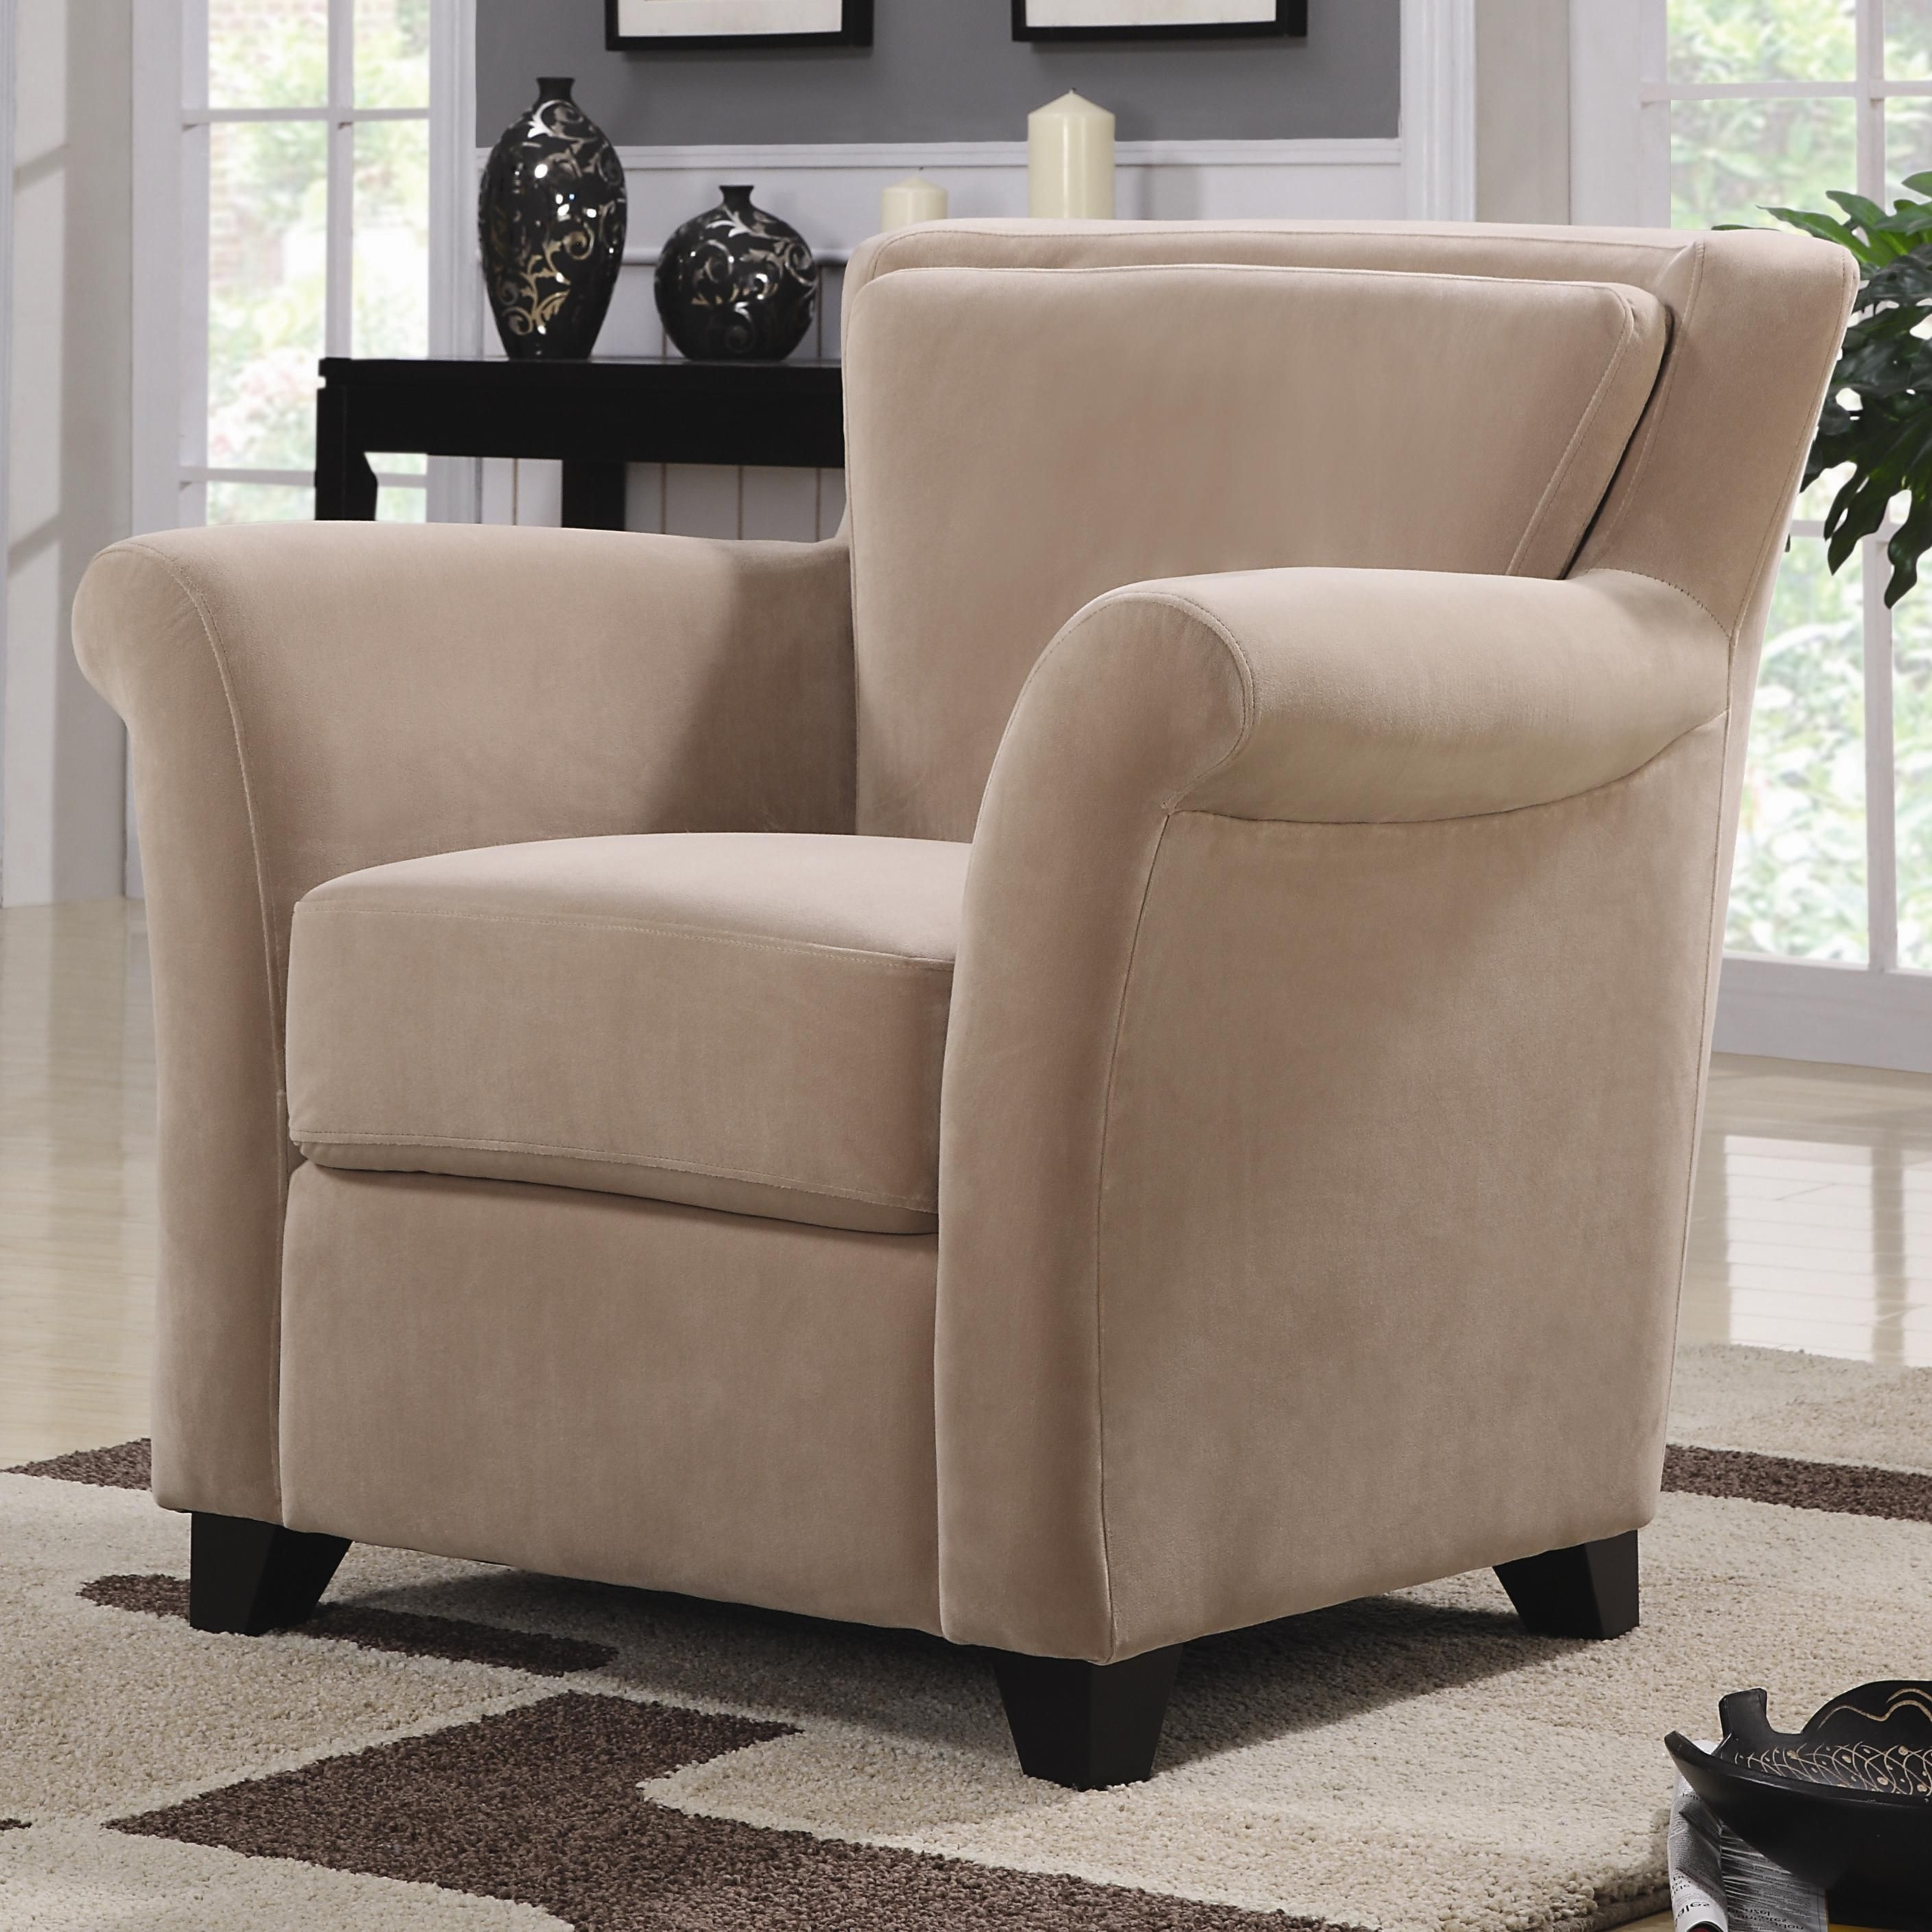 Comfy Chairs For Bedroom | Decorate My House